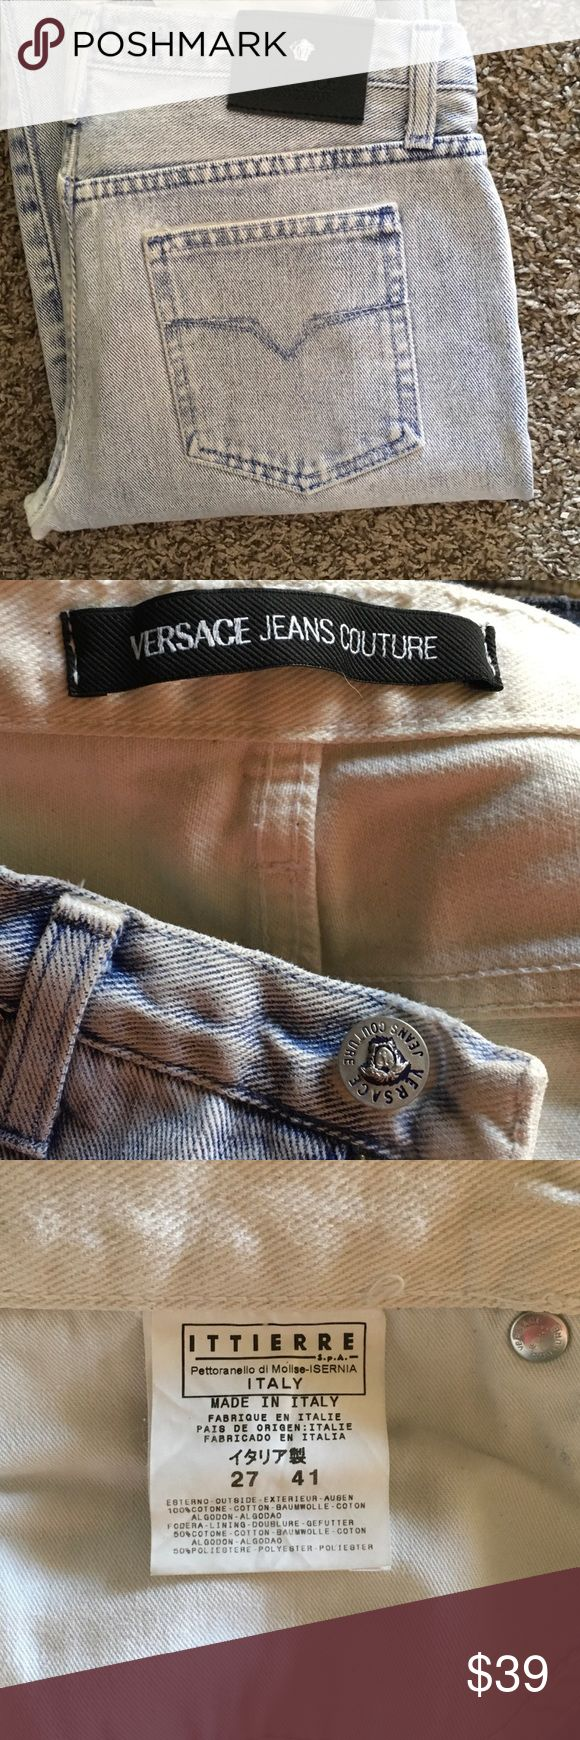 "VERSACE JEAN S COUTURE  NWOT Authentic, Stone wash jeans by Versace . Made in Italy . Boot cut style . Size 27. Inseam 33"" Versace Jeans Boot Cut"